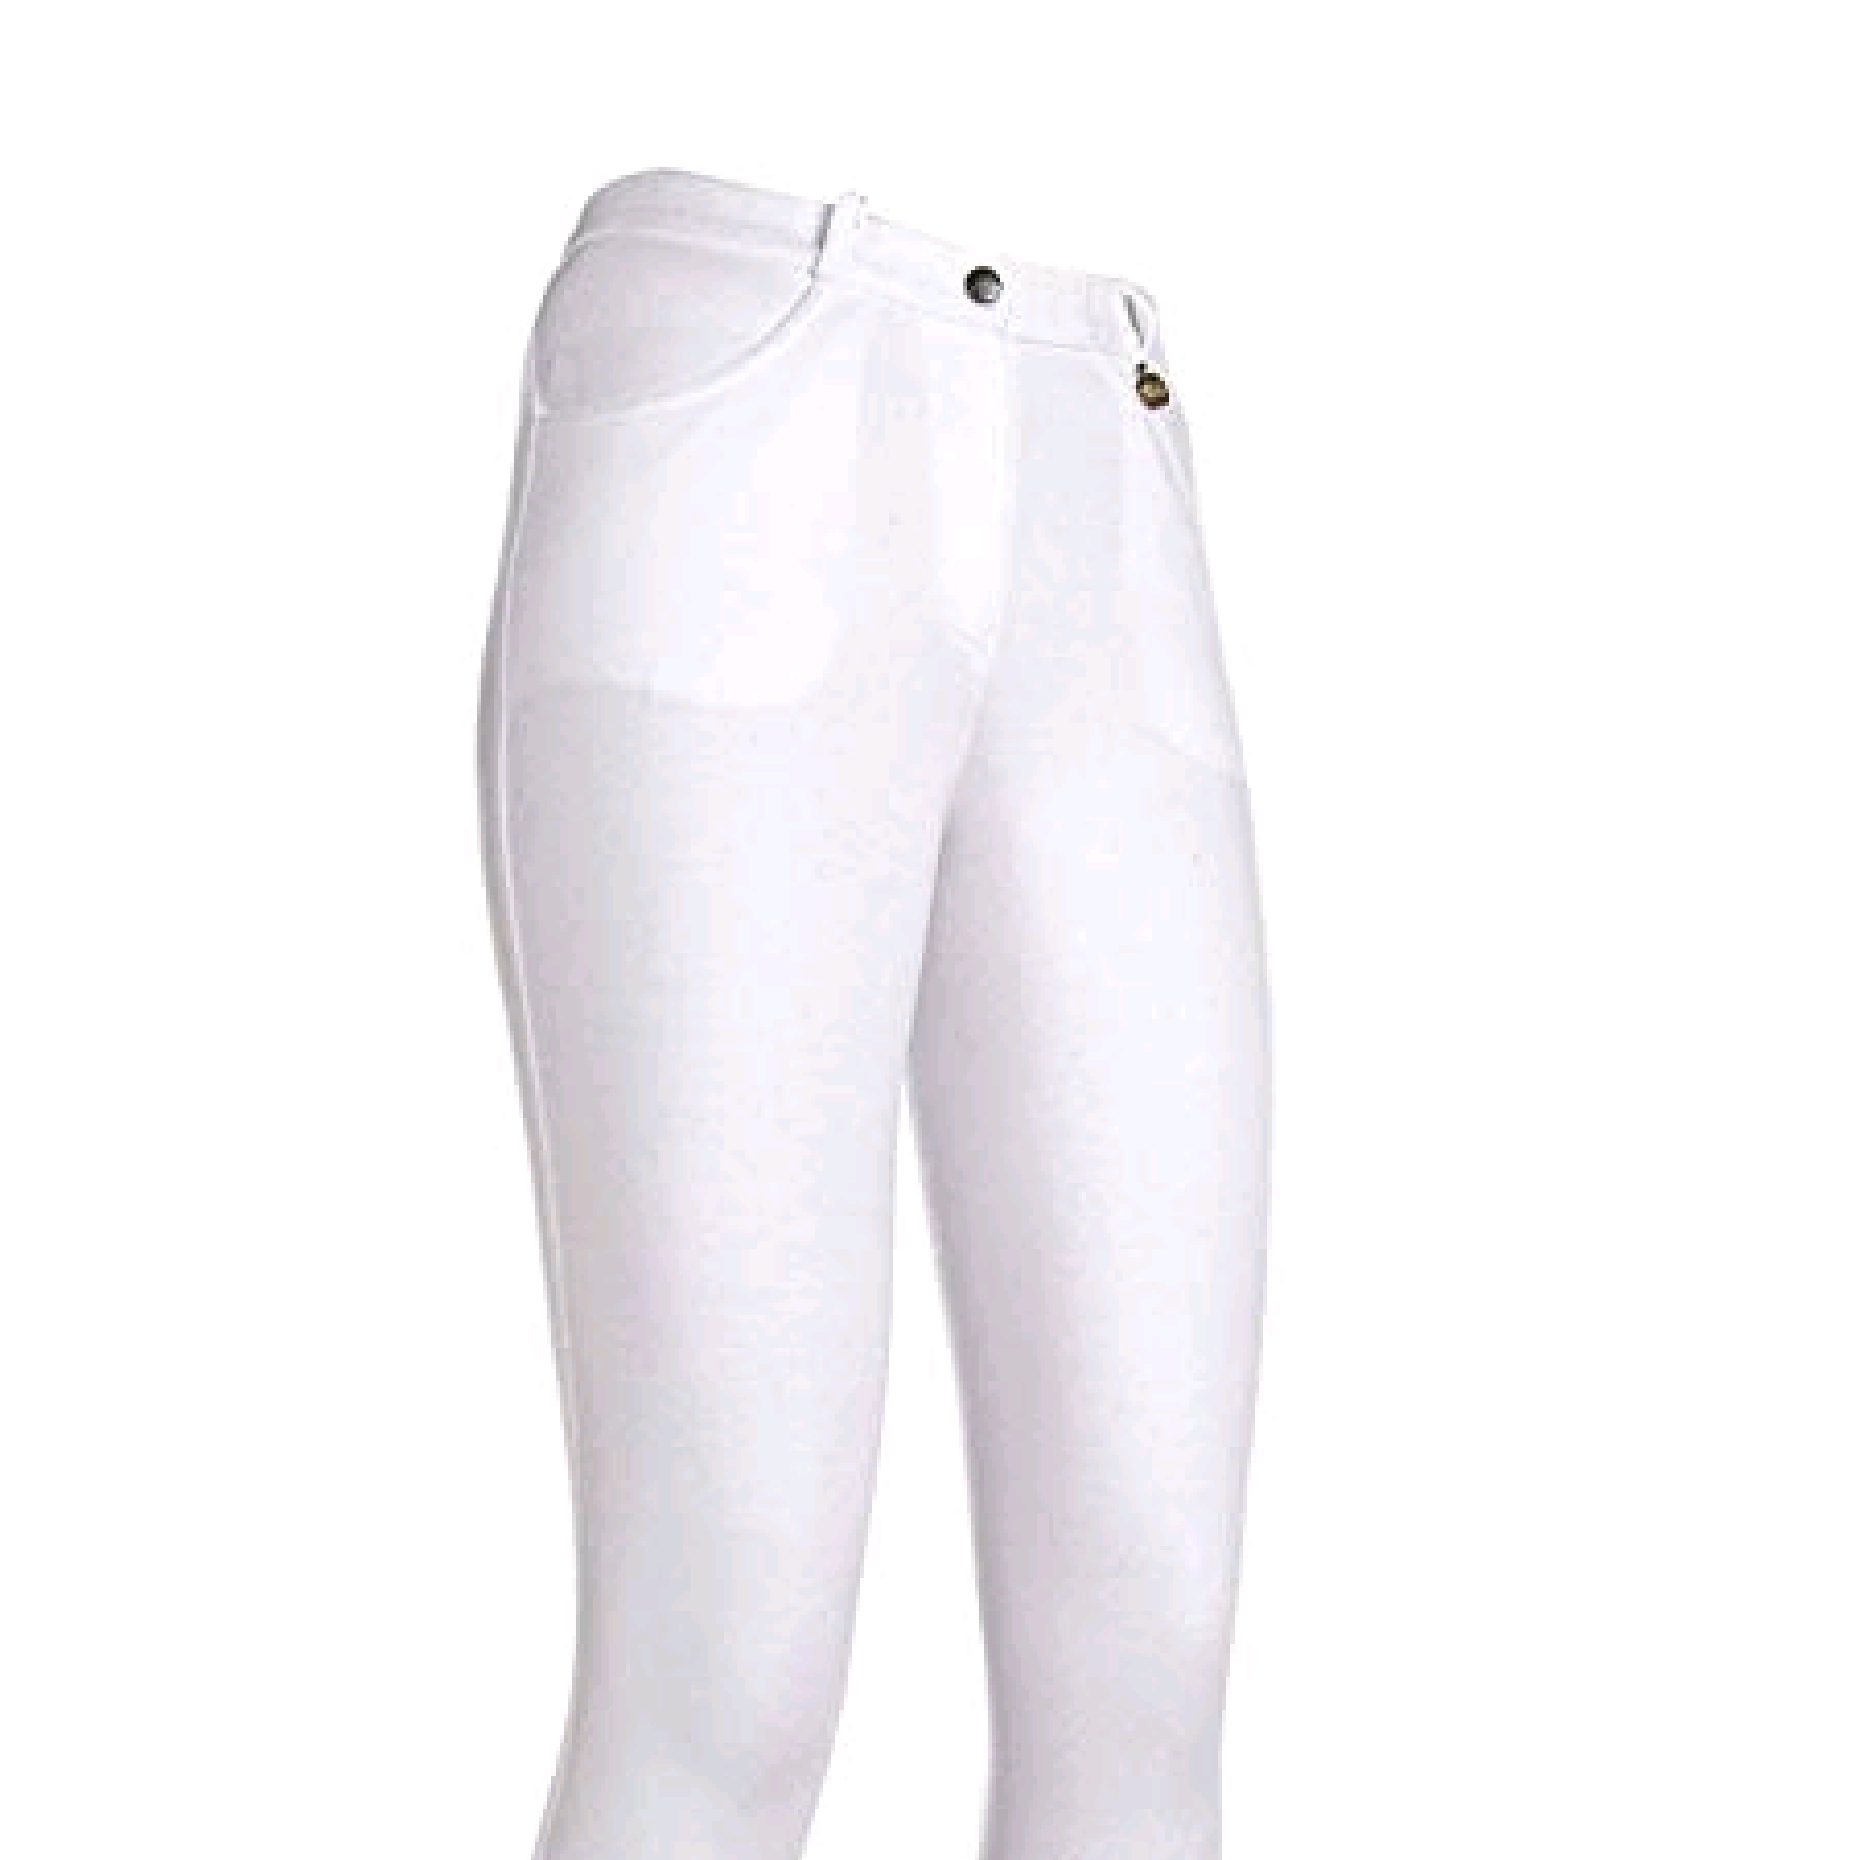 HKM Kate White Breeches